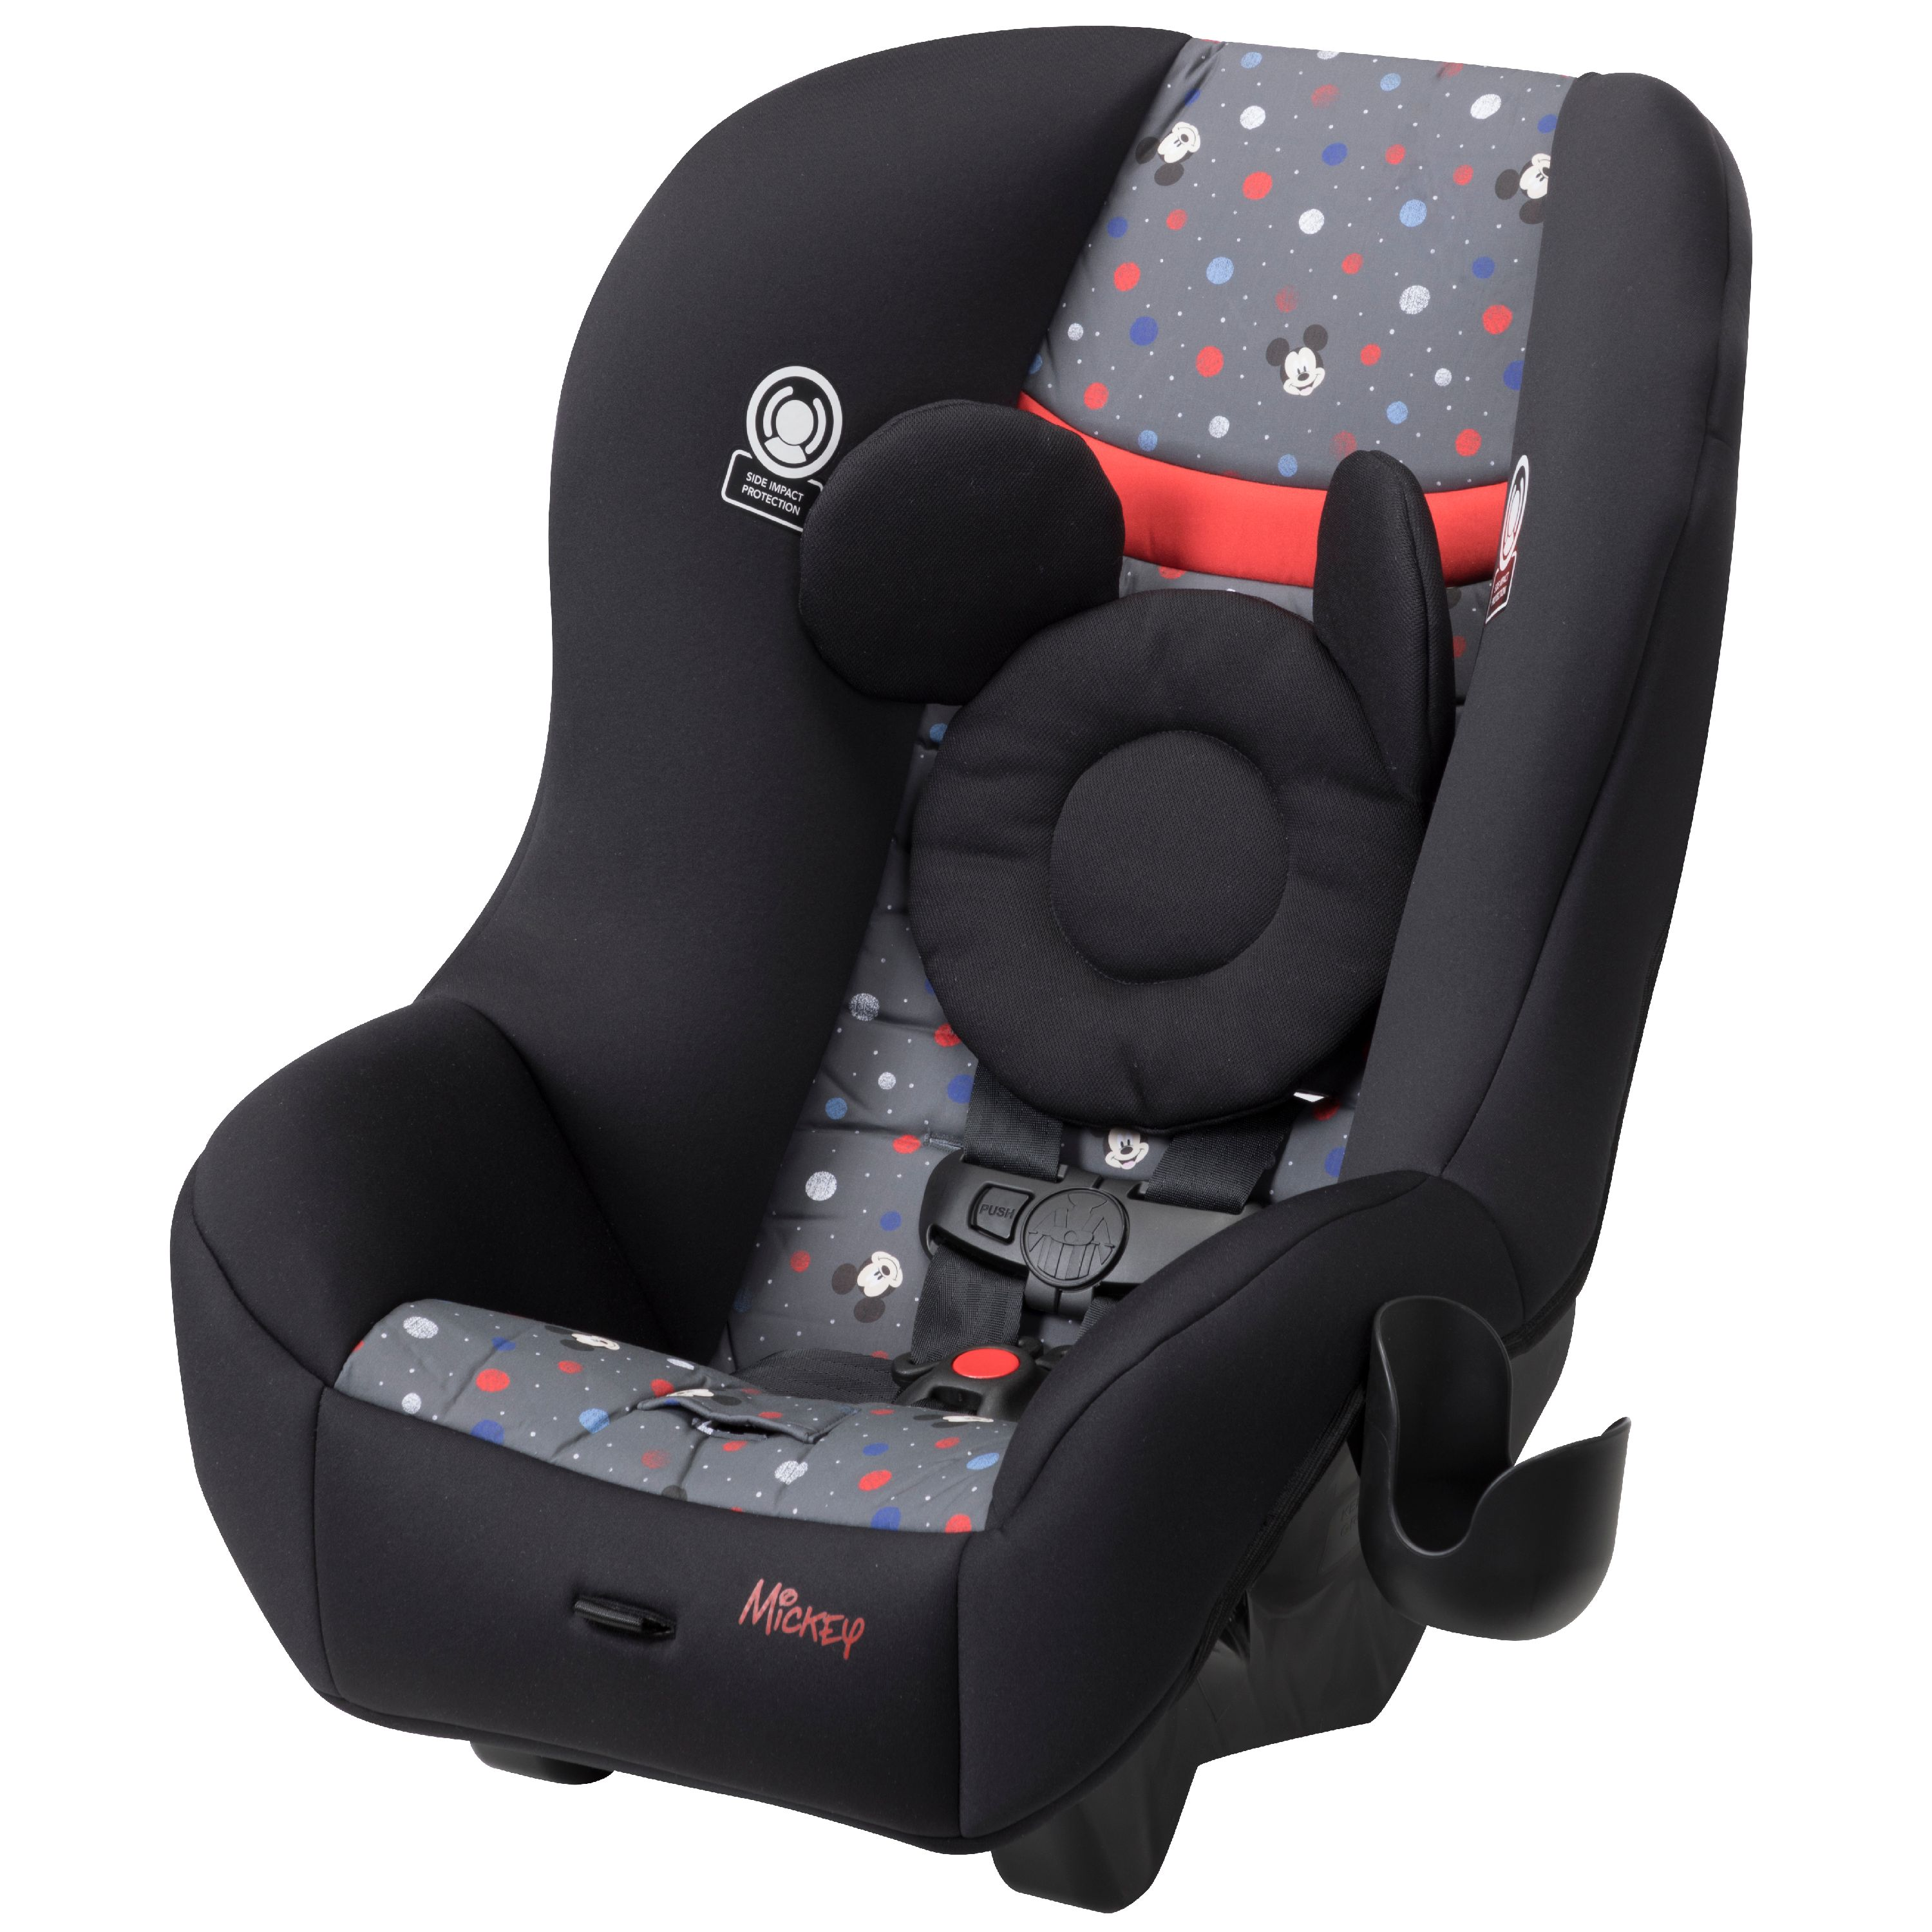 Baby Car Seat Blanket Free Pattern Disney Baby Scenera Next Luxe Convertible Car Seat Mickey Indigo Dreams Walmart